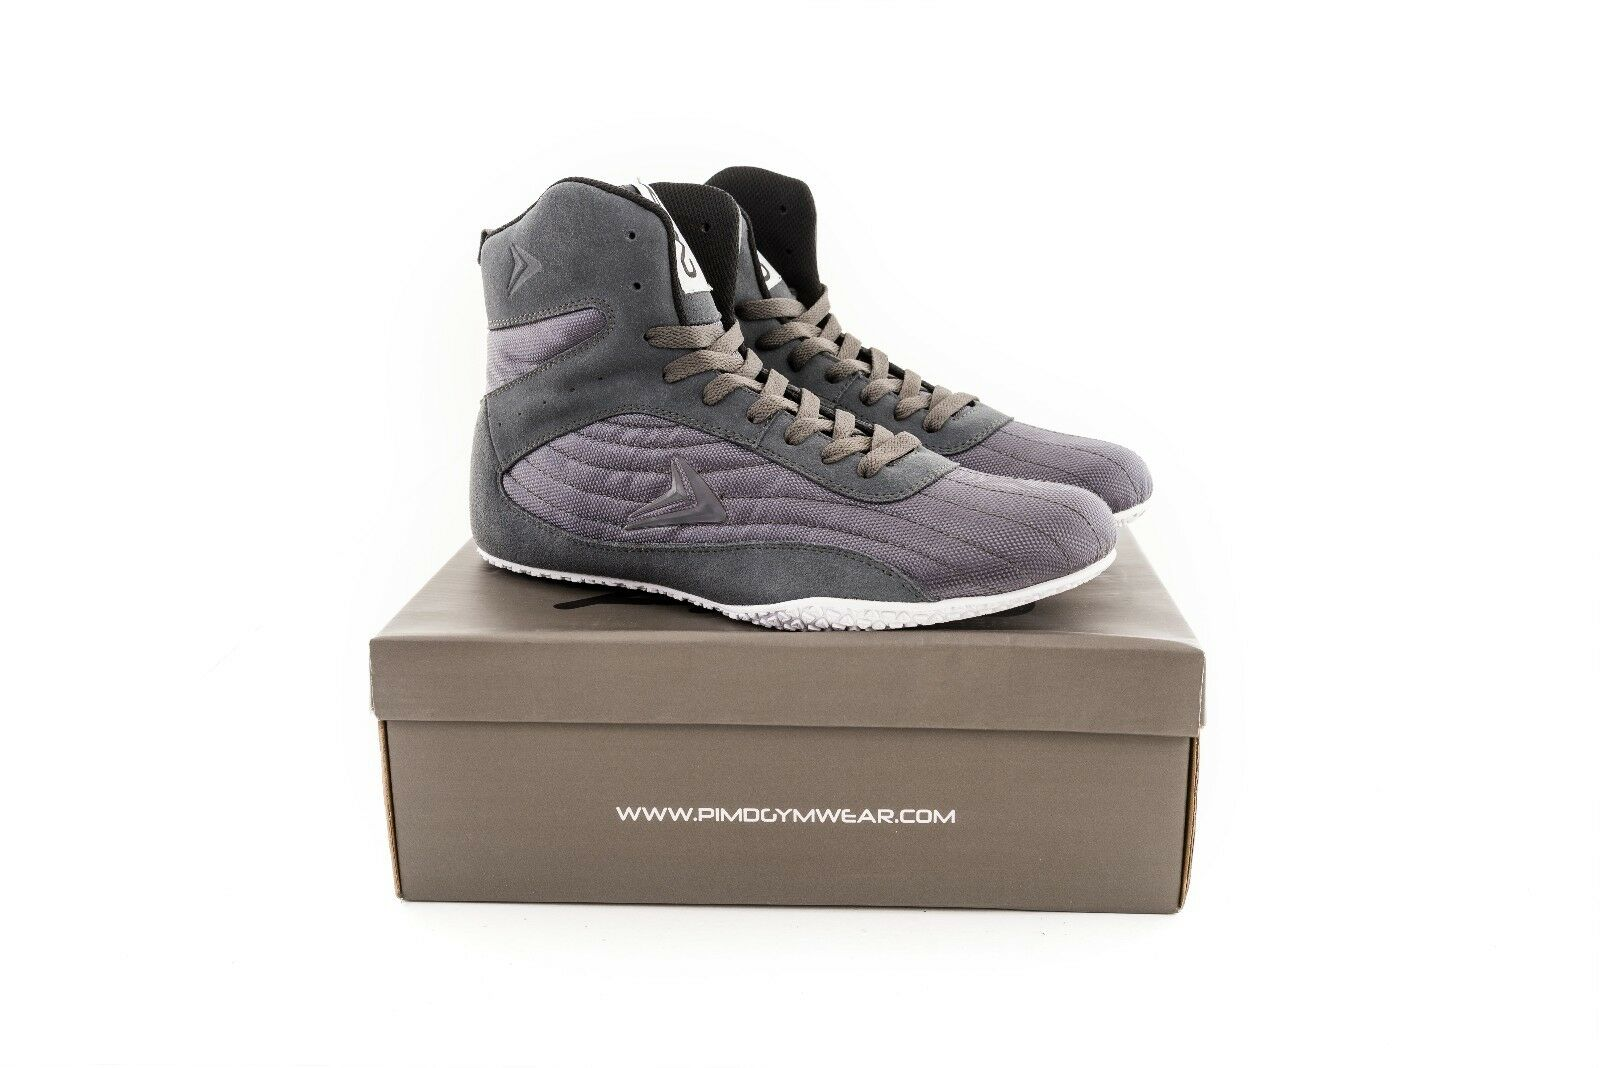 PIMD Grey X-Core V2 Gym shoes Training High Top Boots Bodybuilding MMA Boxing